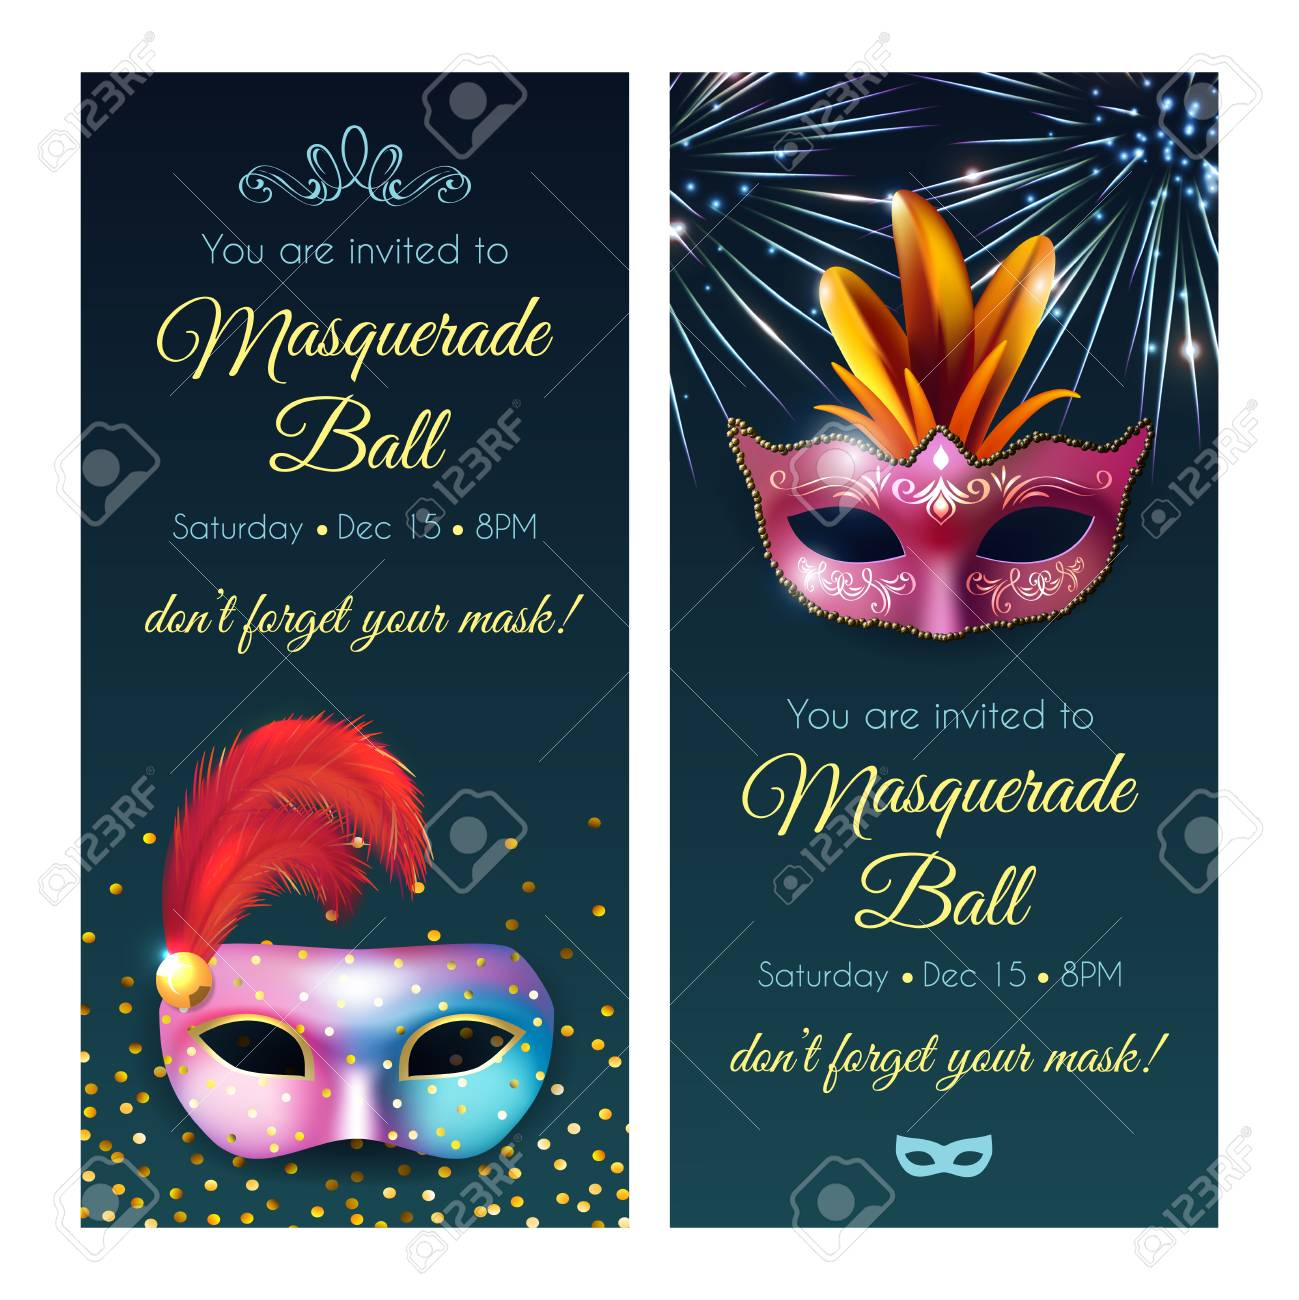 Masquerade Invitation Ideas